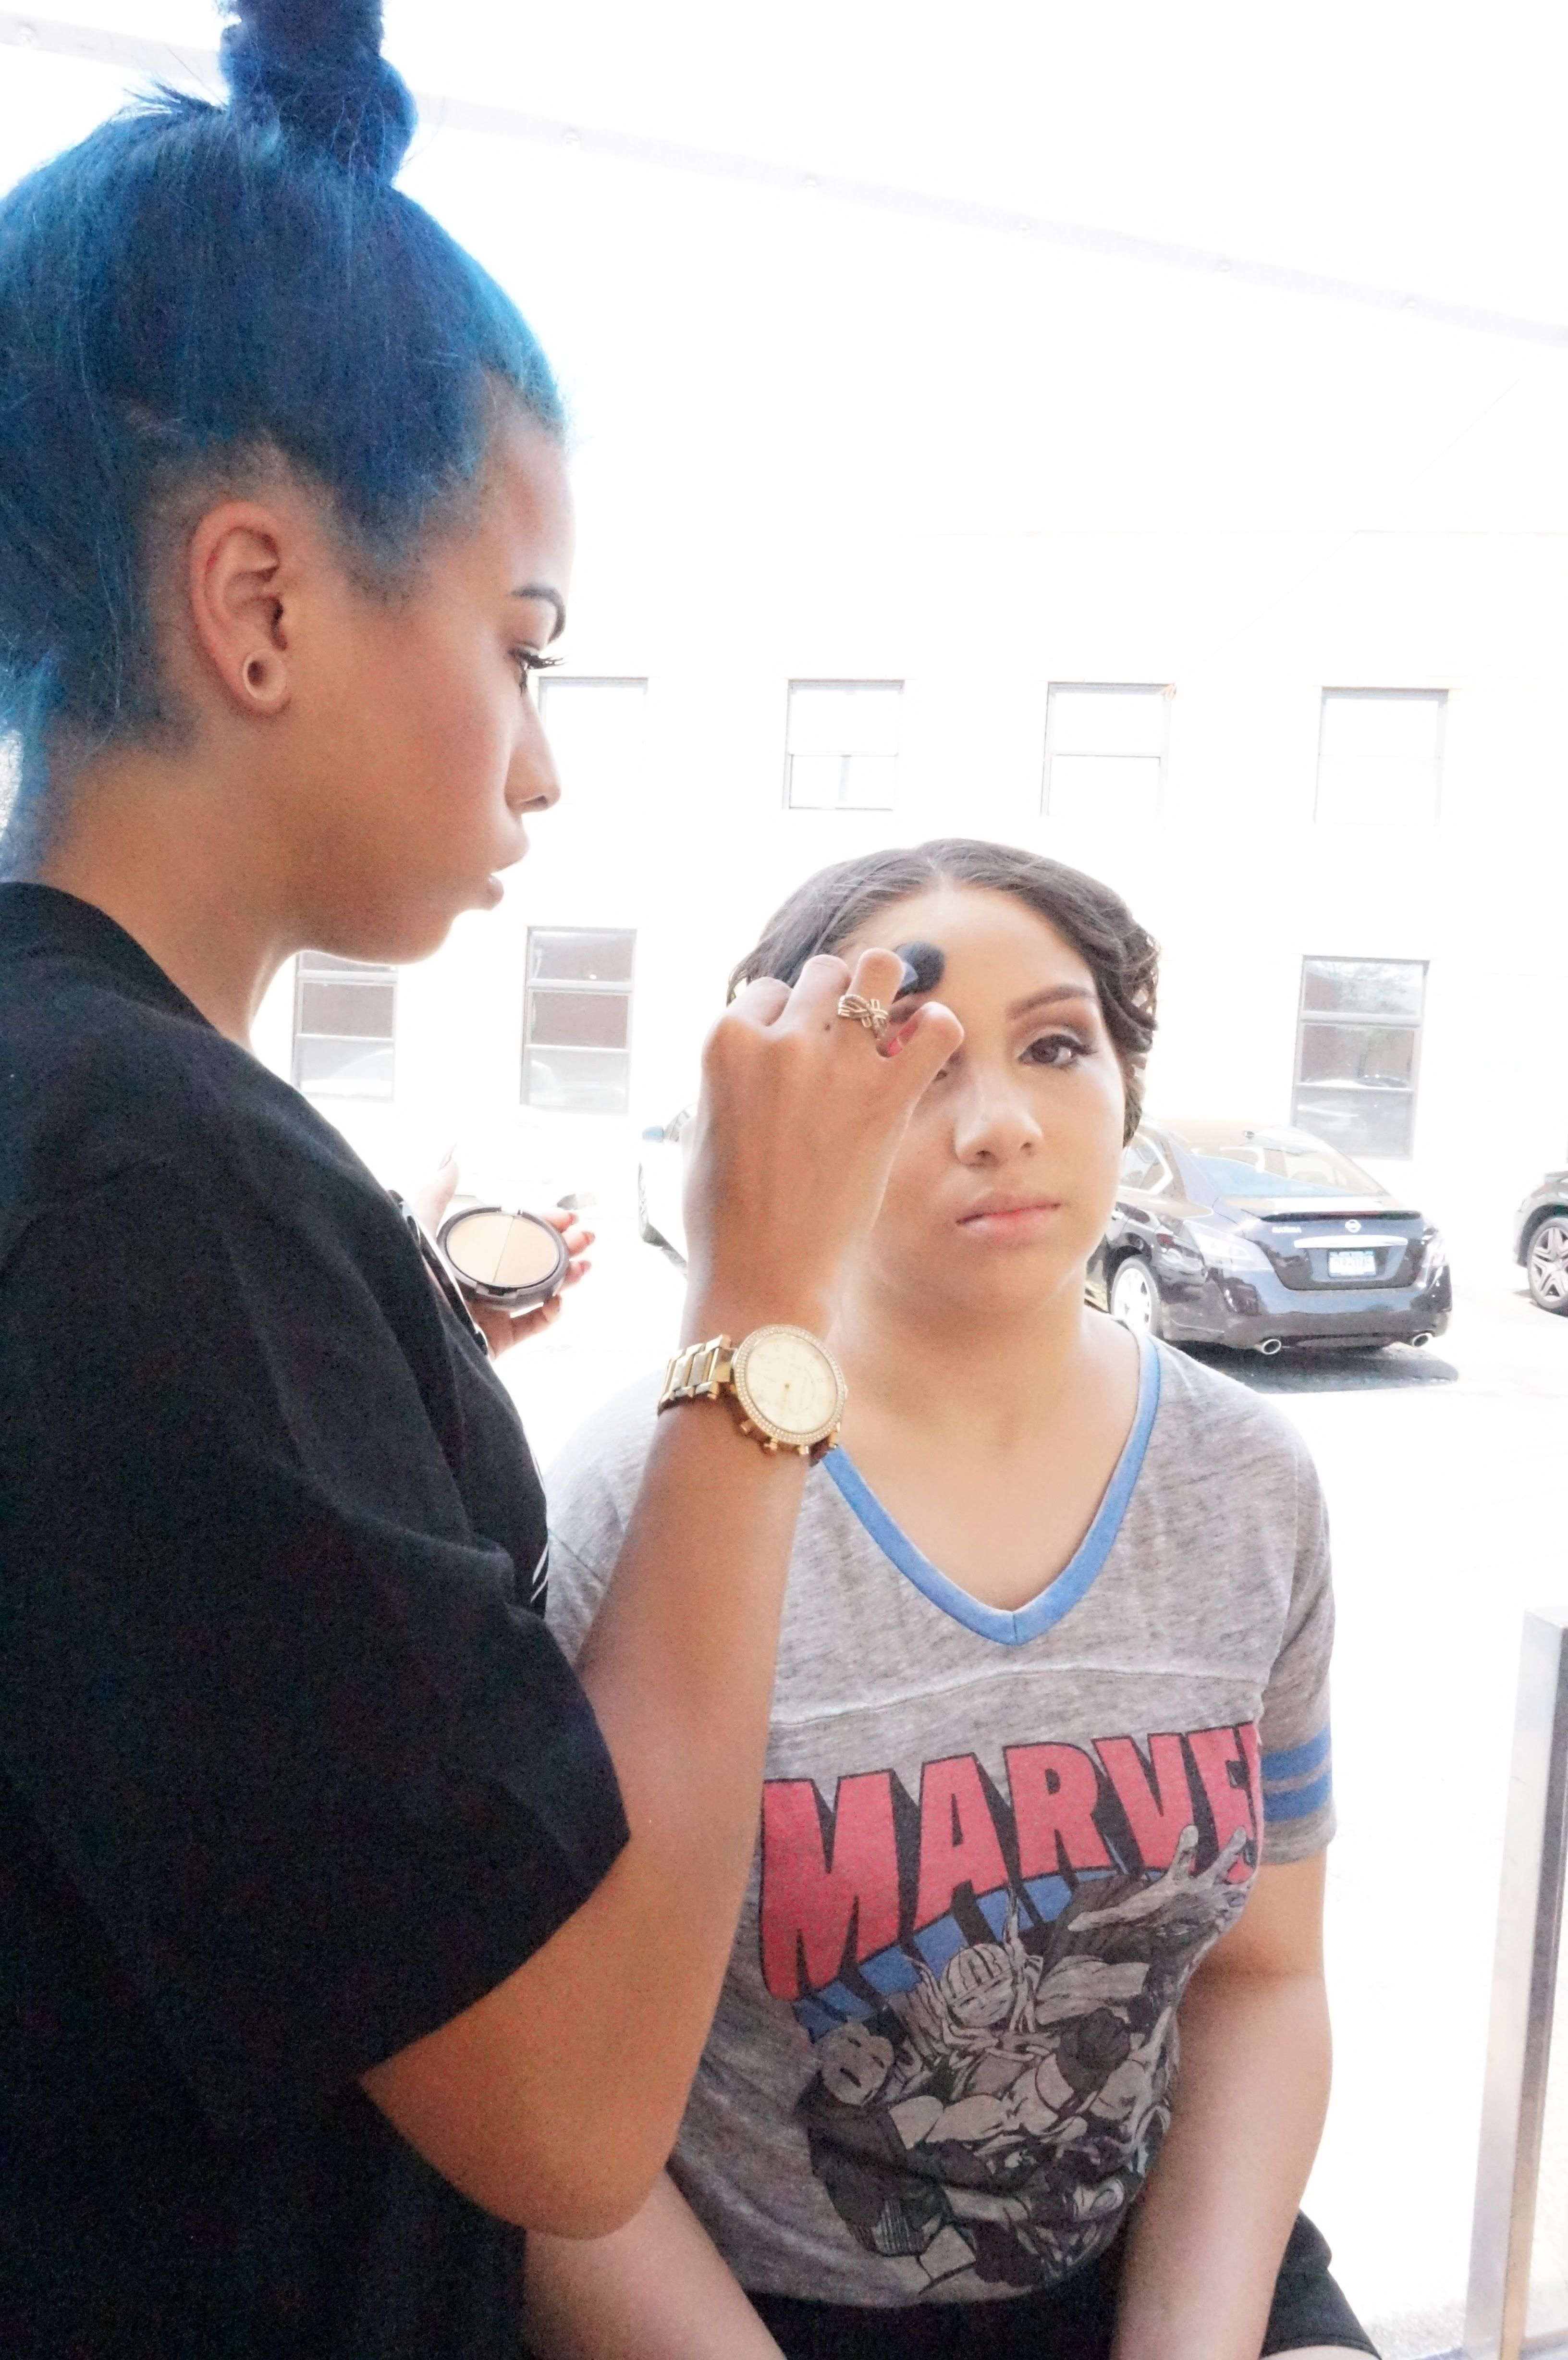 Sheamoisture did hair and makeup for lucky copiague high school